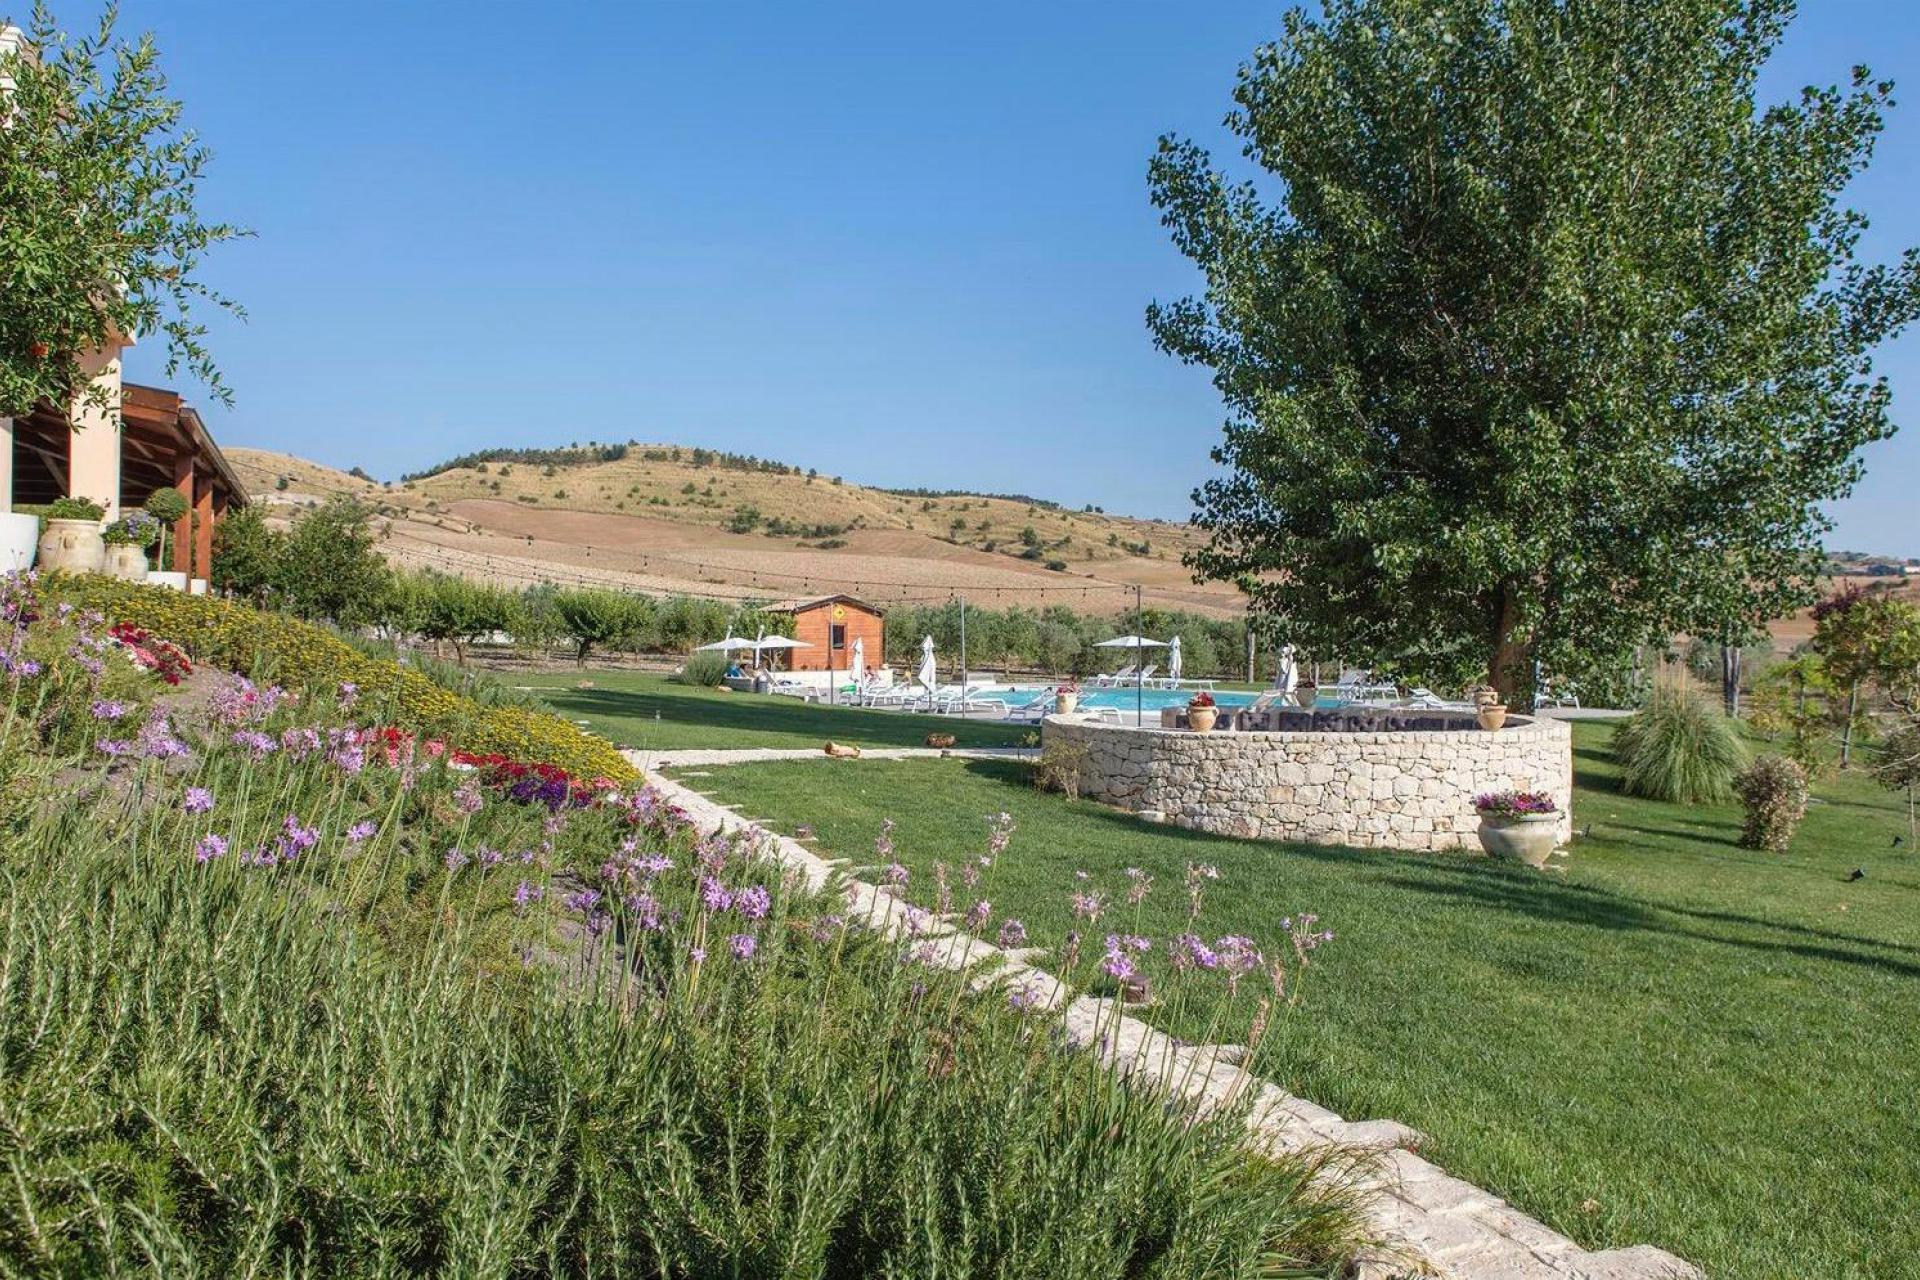 Agriturismo Sicily Child friendly agriturismo Sicily with beautiful pool